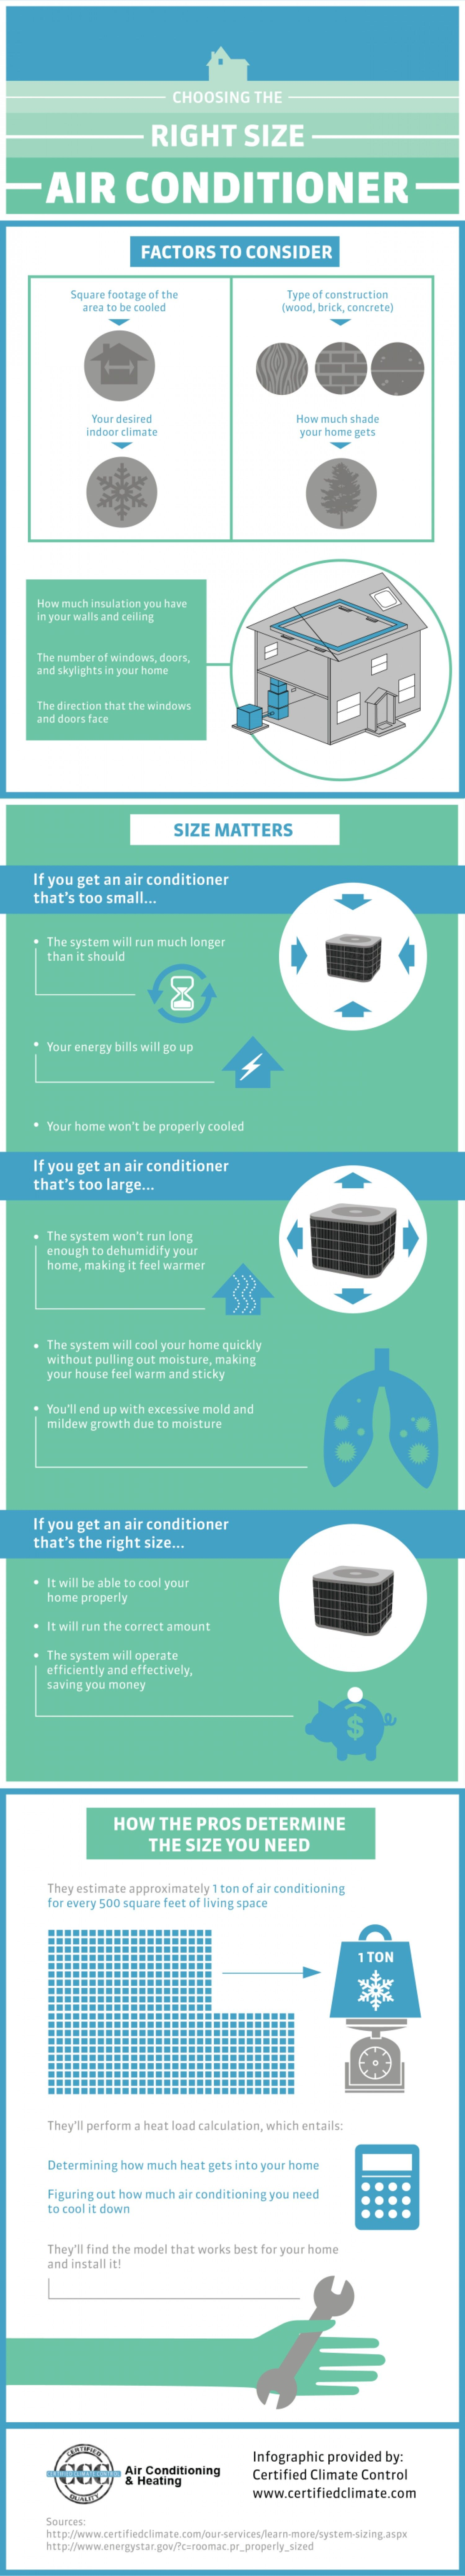 Choosing the Right Size Air Conditioner shared by BrittSE